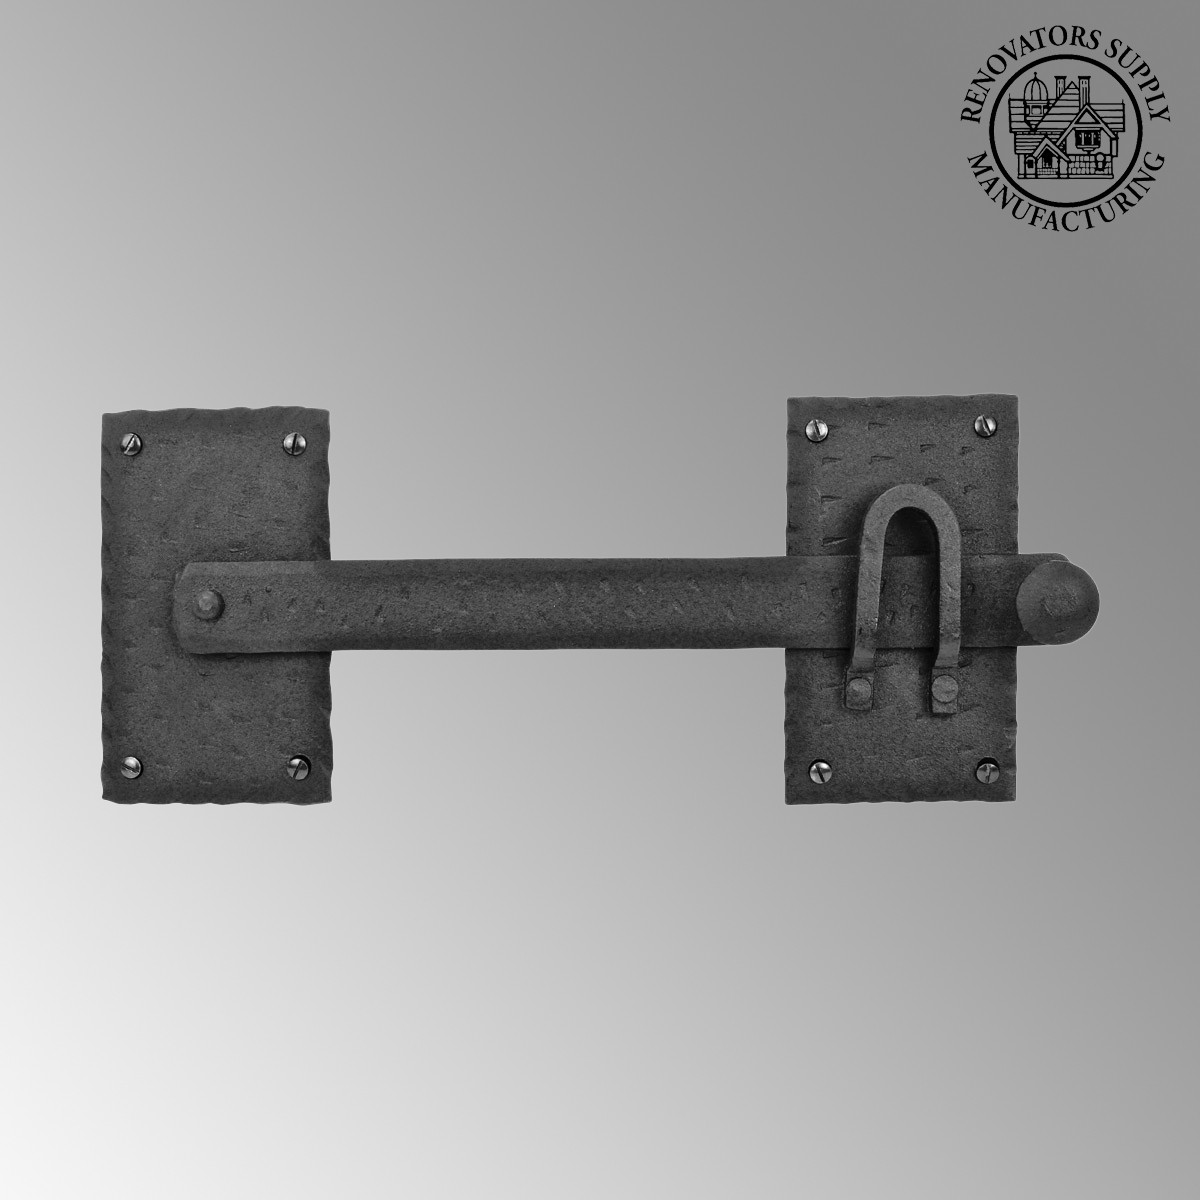 Fence gate latch lock black wrought iron inch